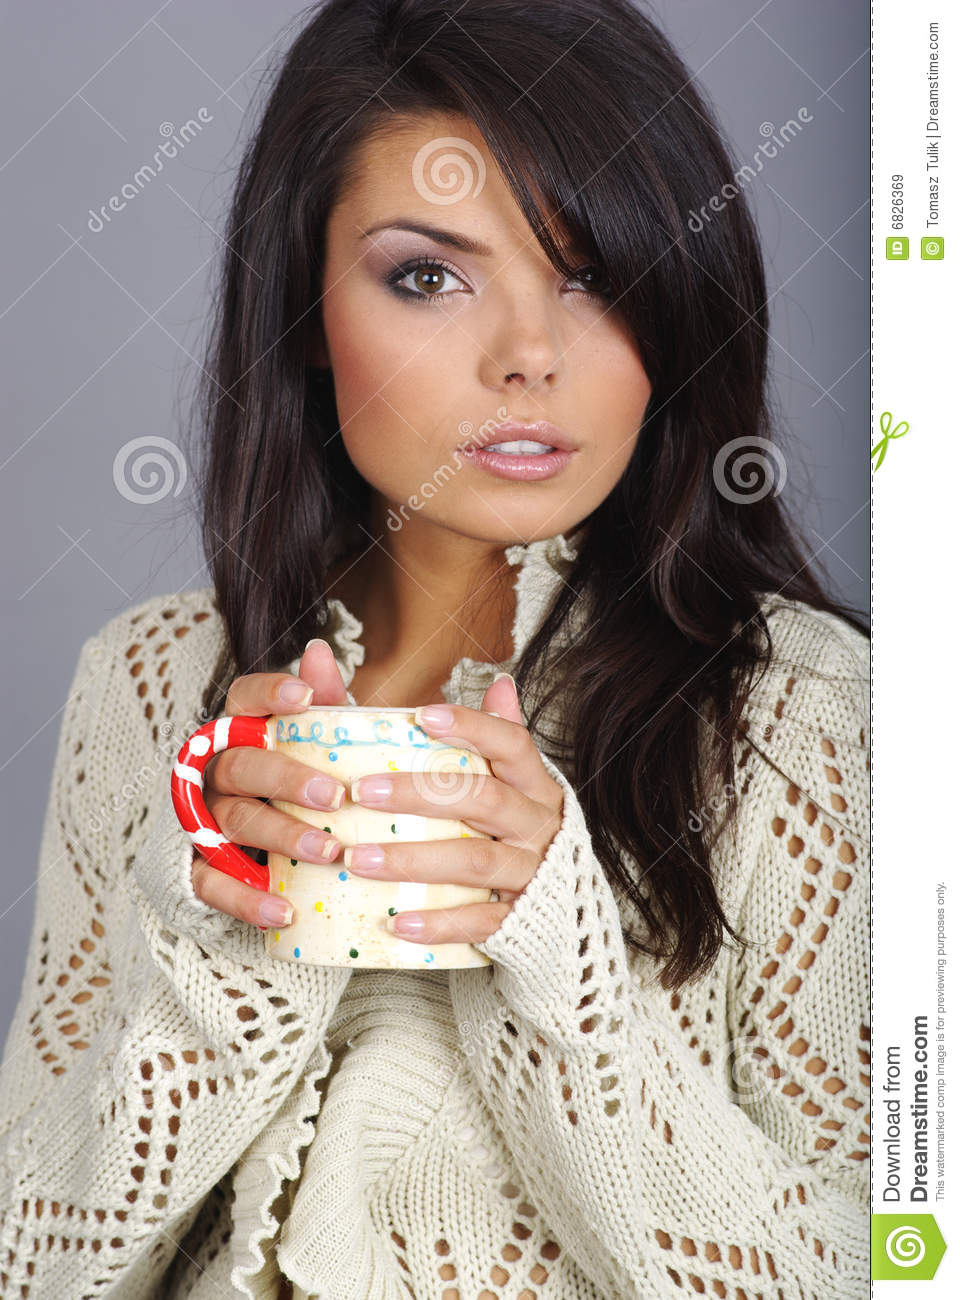 Beautiful Girl Holding Hot Tea Cup Stock Image - Image of